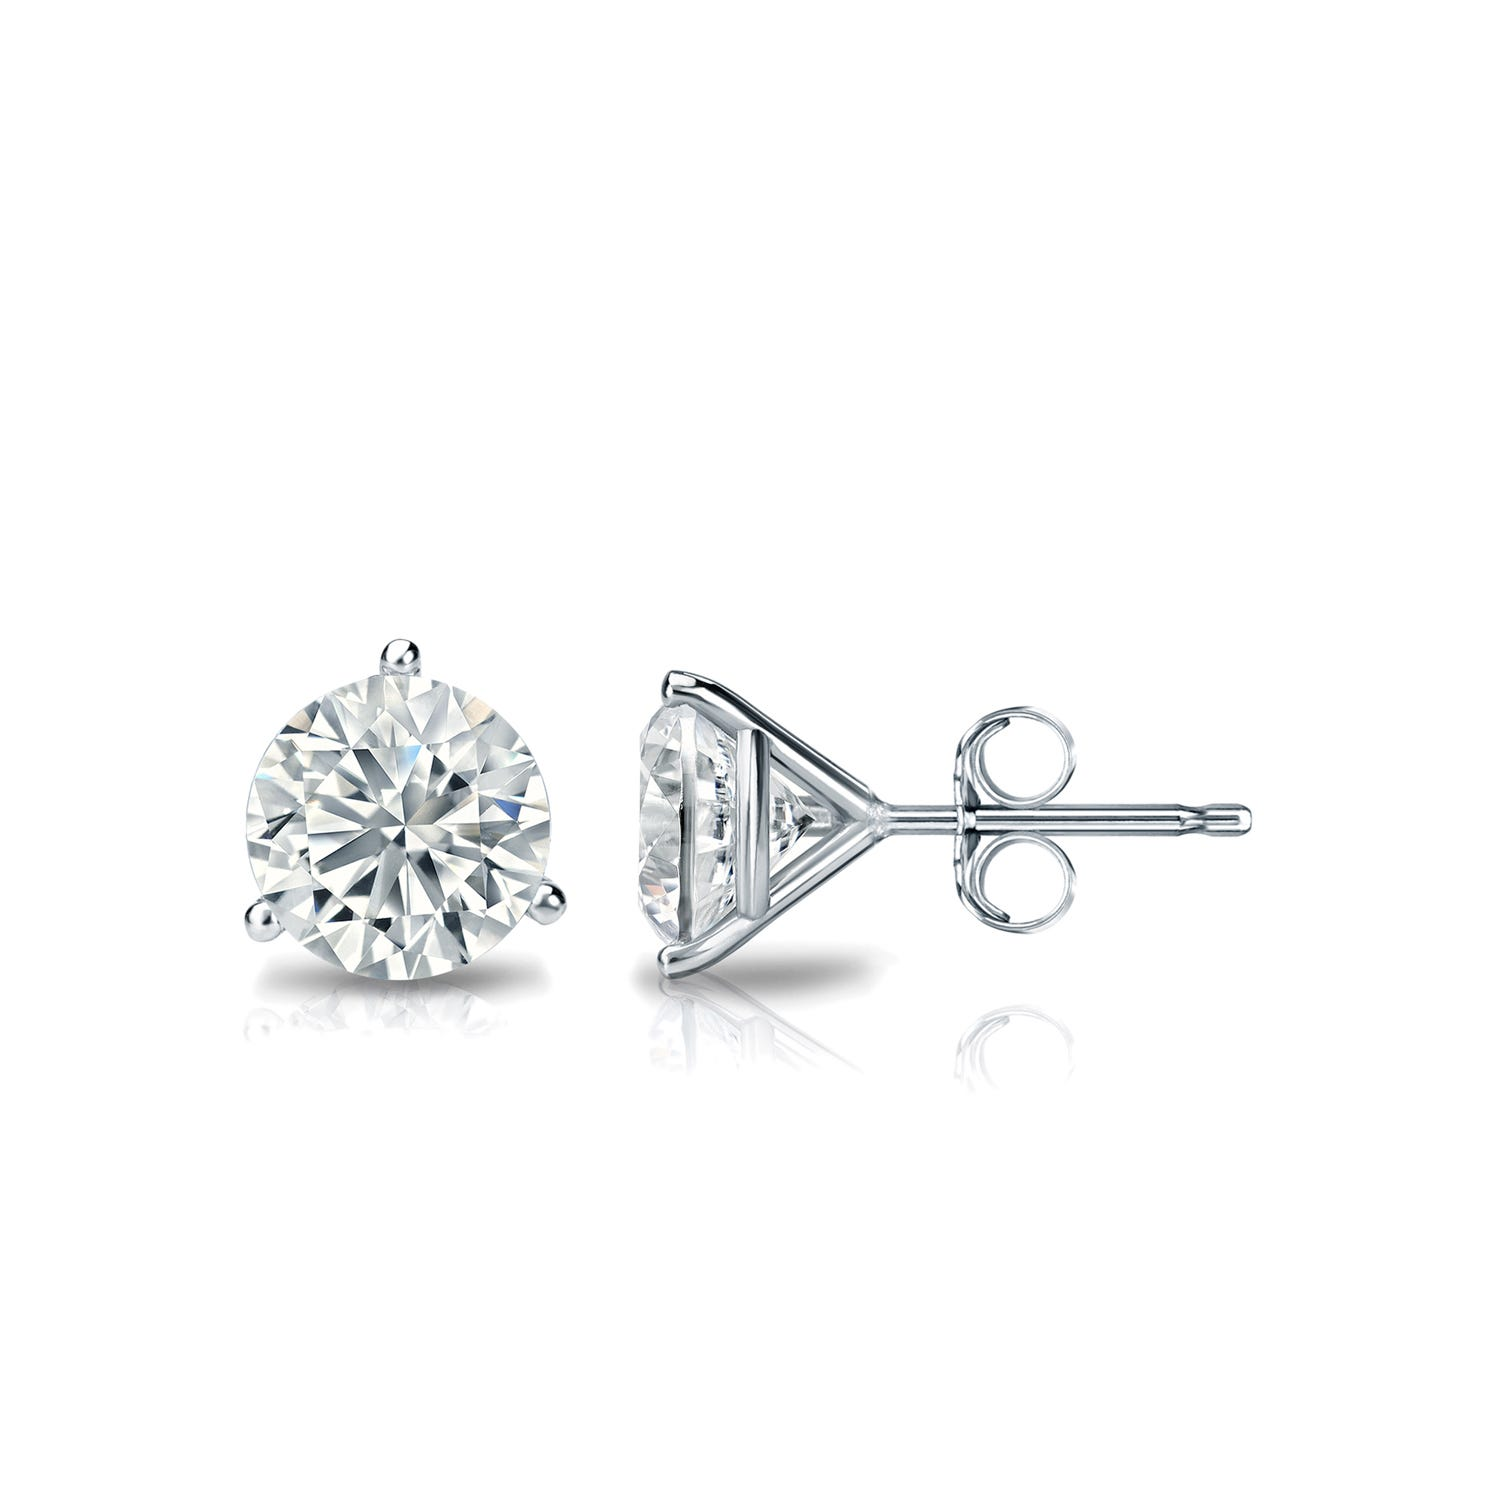 3/4 CTTW Round Diamond Solitaire Stud Earrings IJ SI1 in Platinum IGI Certified 3-Prong Setting